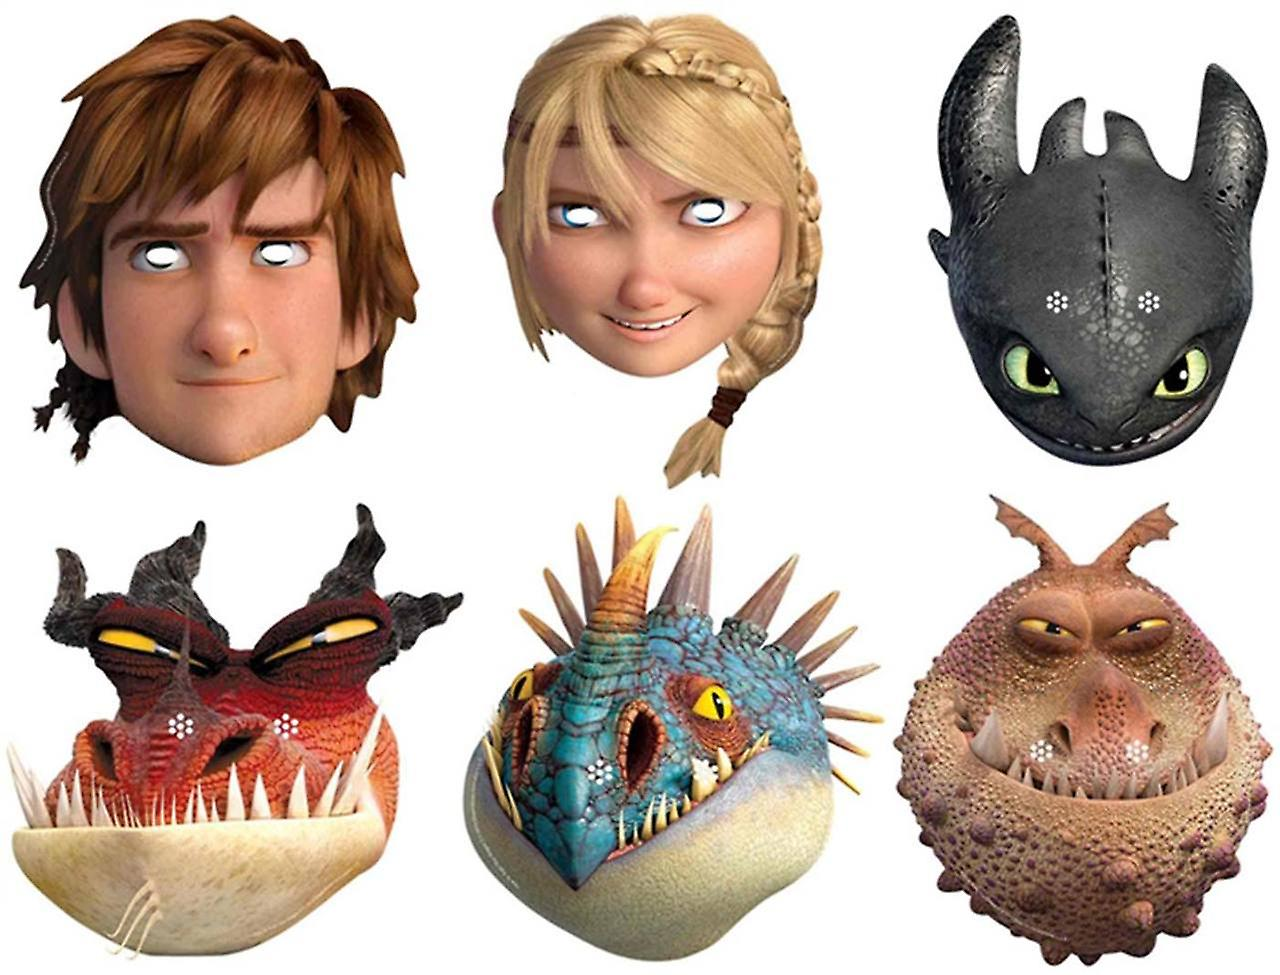 How To Train Your Dragon 2 - Variety Party Card Face Mask Pack of 6 (Hiccup, Toothless, Astrid, Nadder, Gronckle and Monstrous Nightmare)